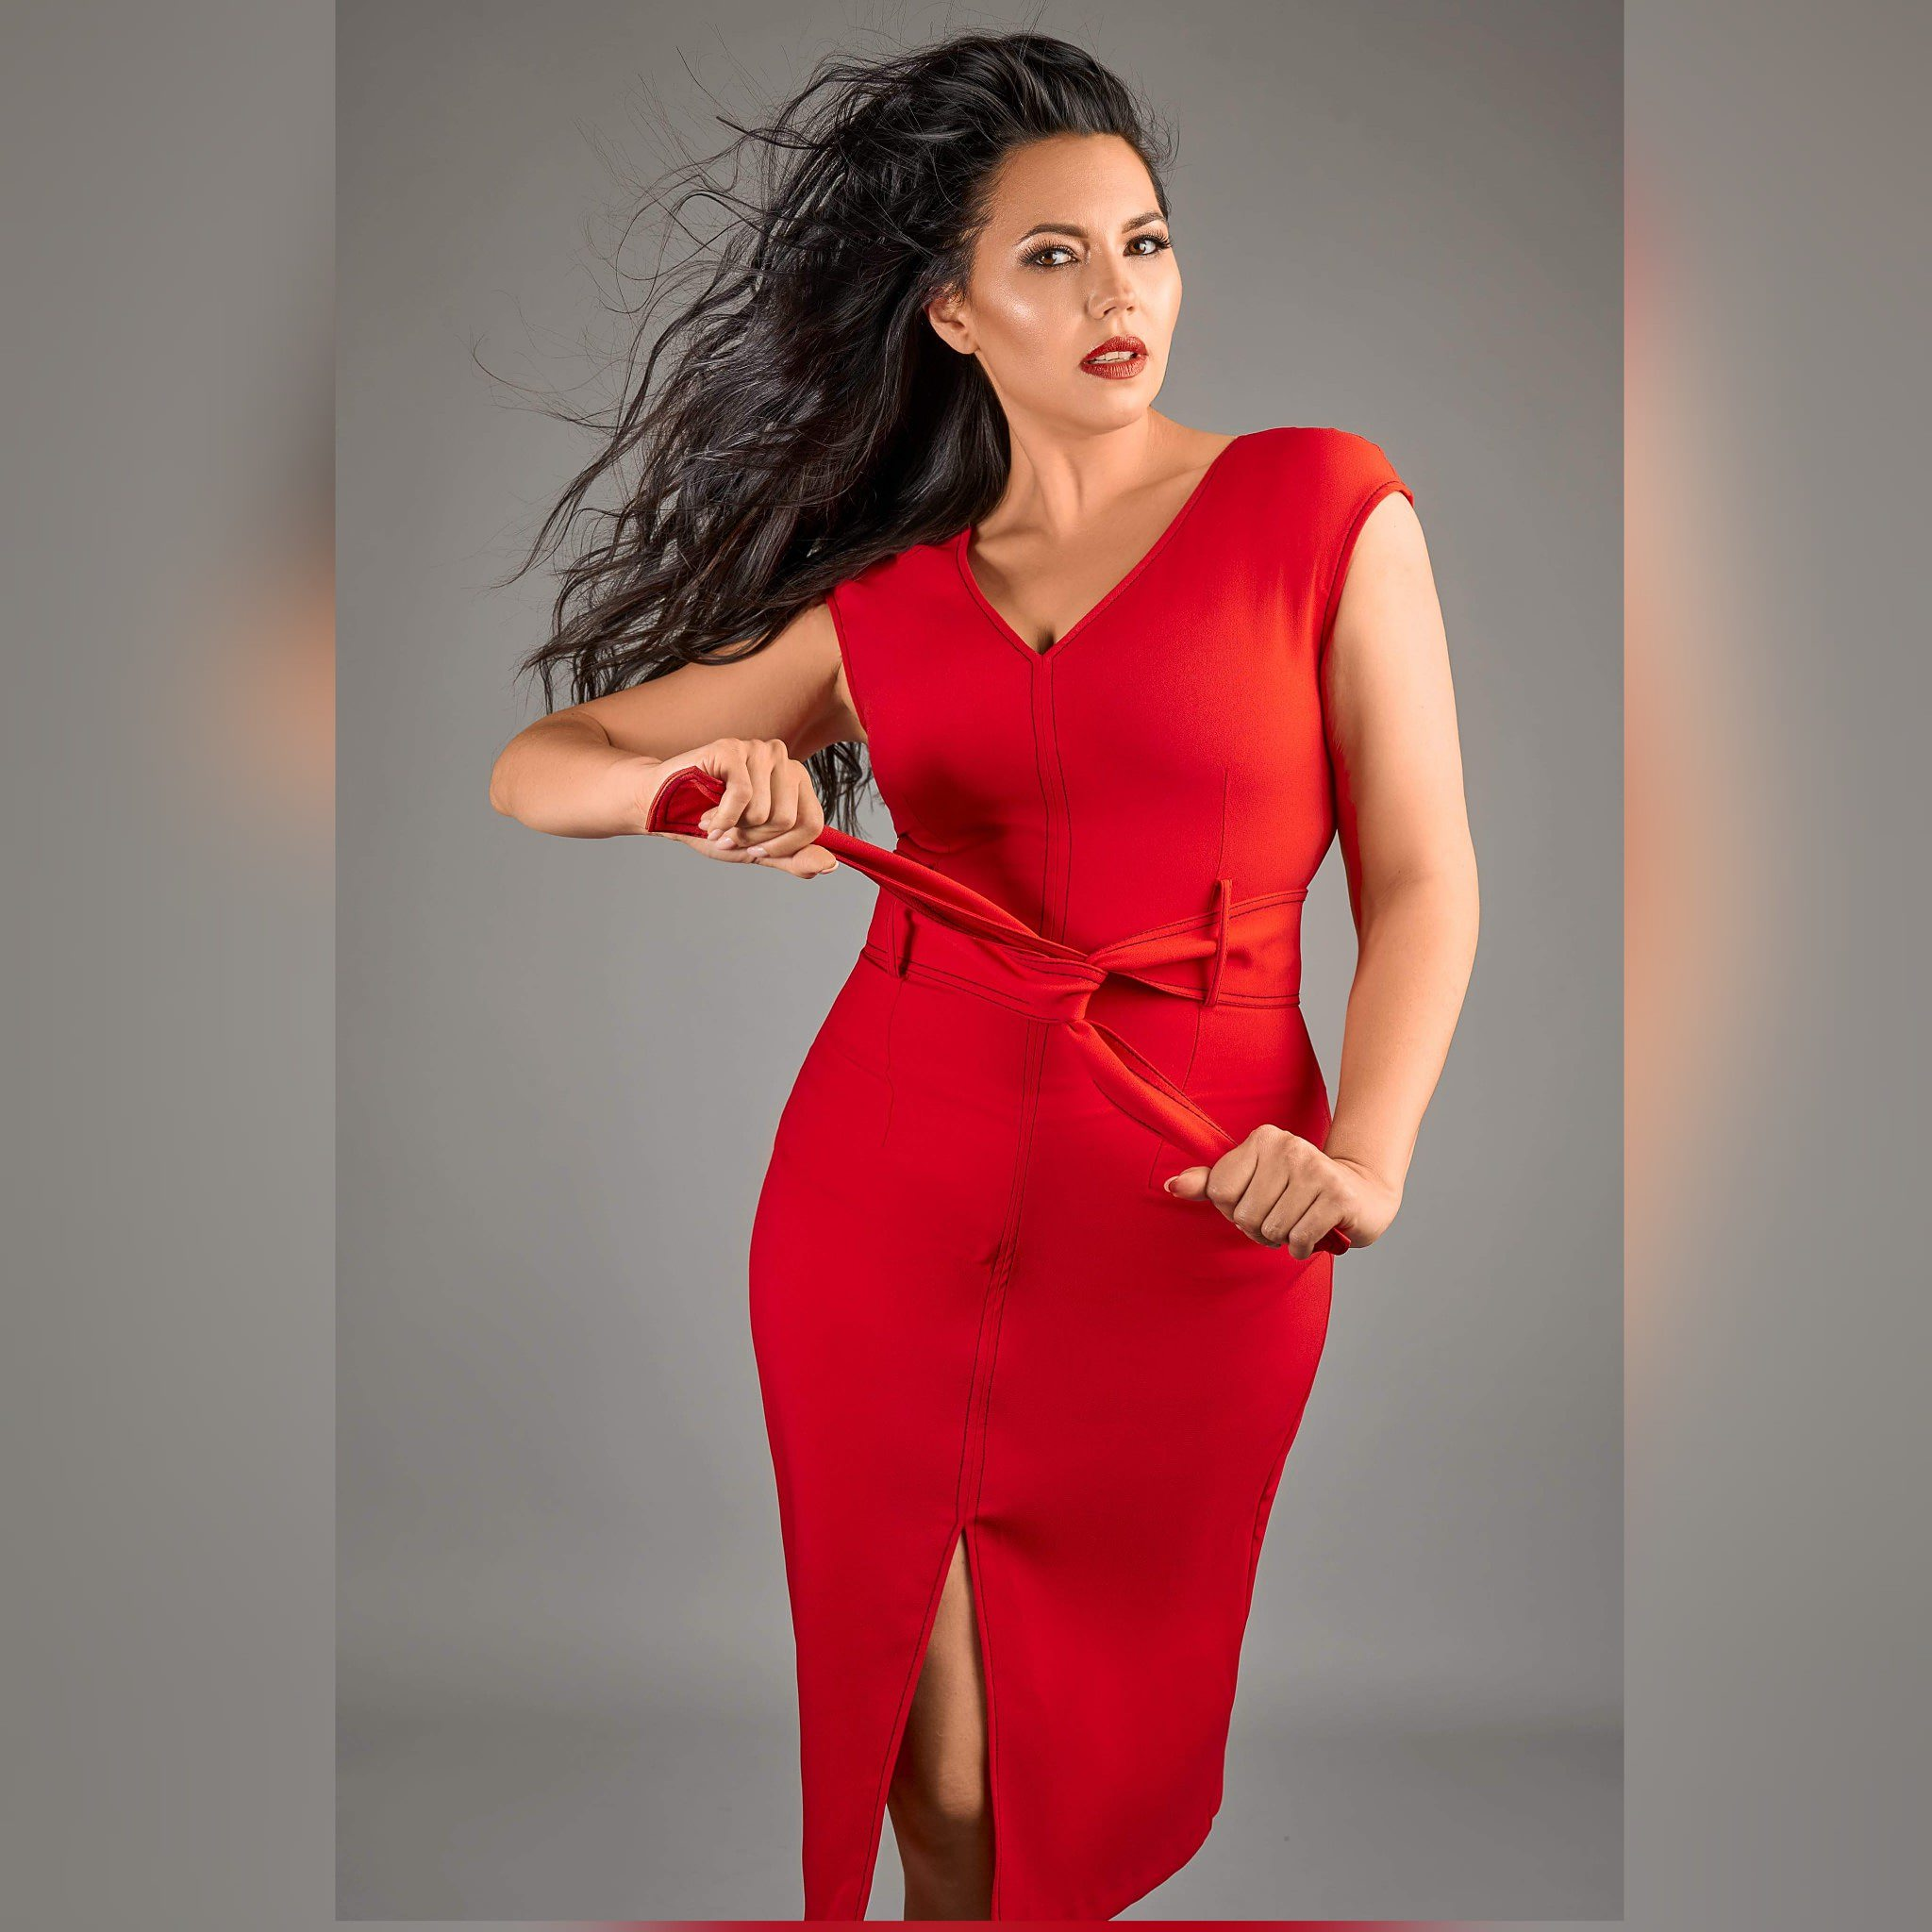 Plus Size Model Schweiz